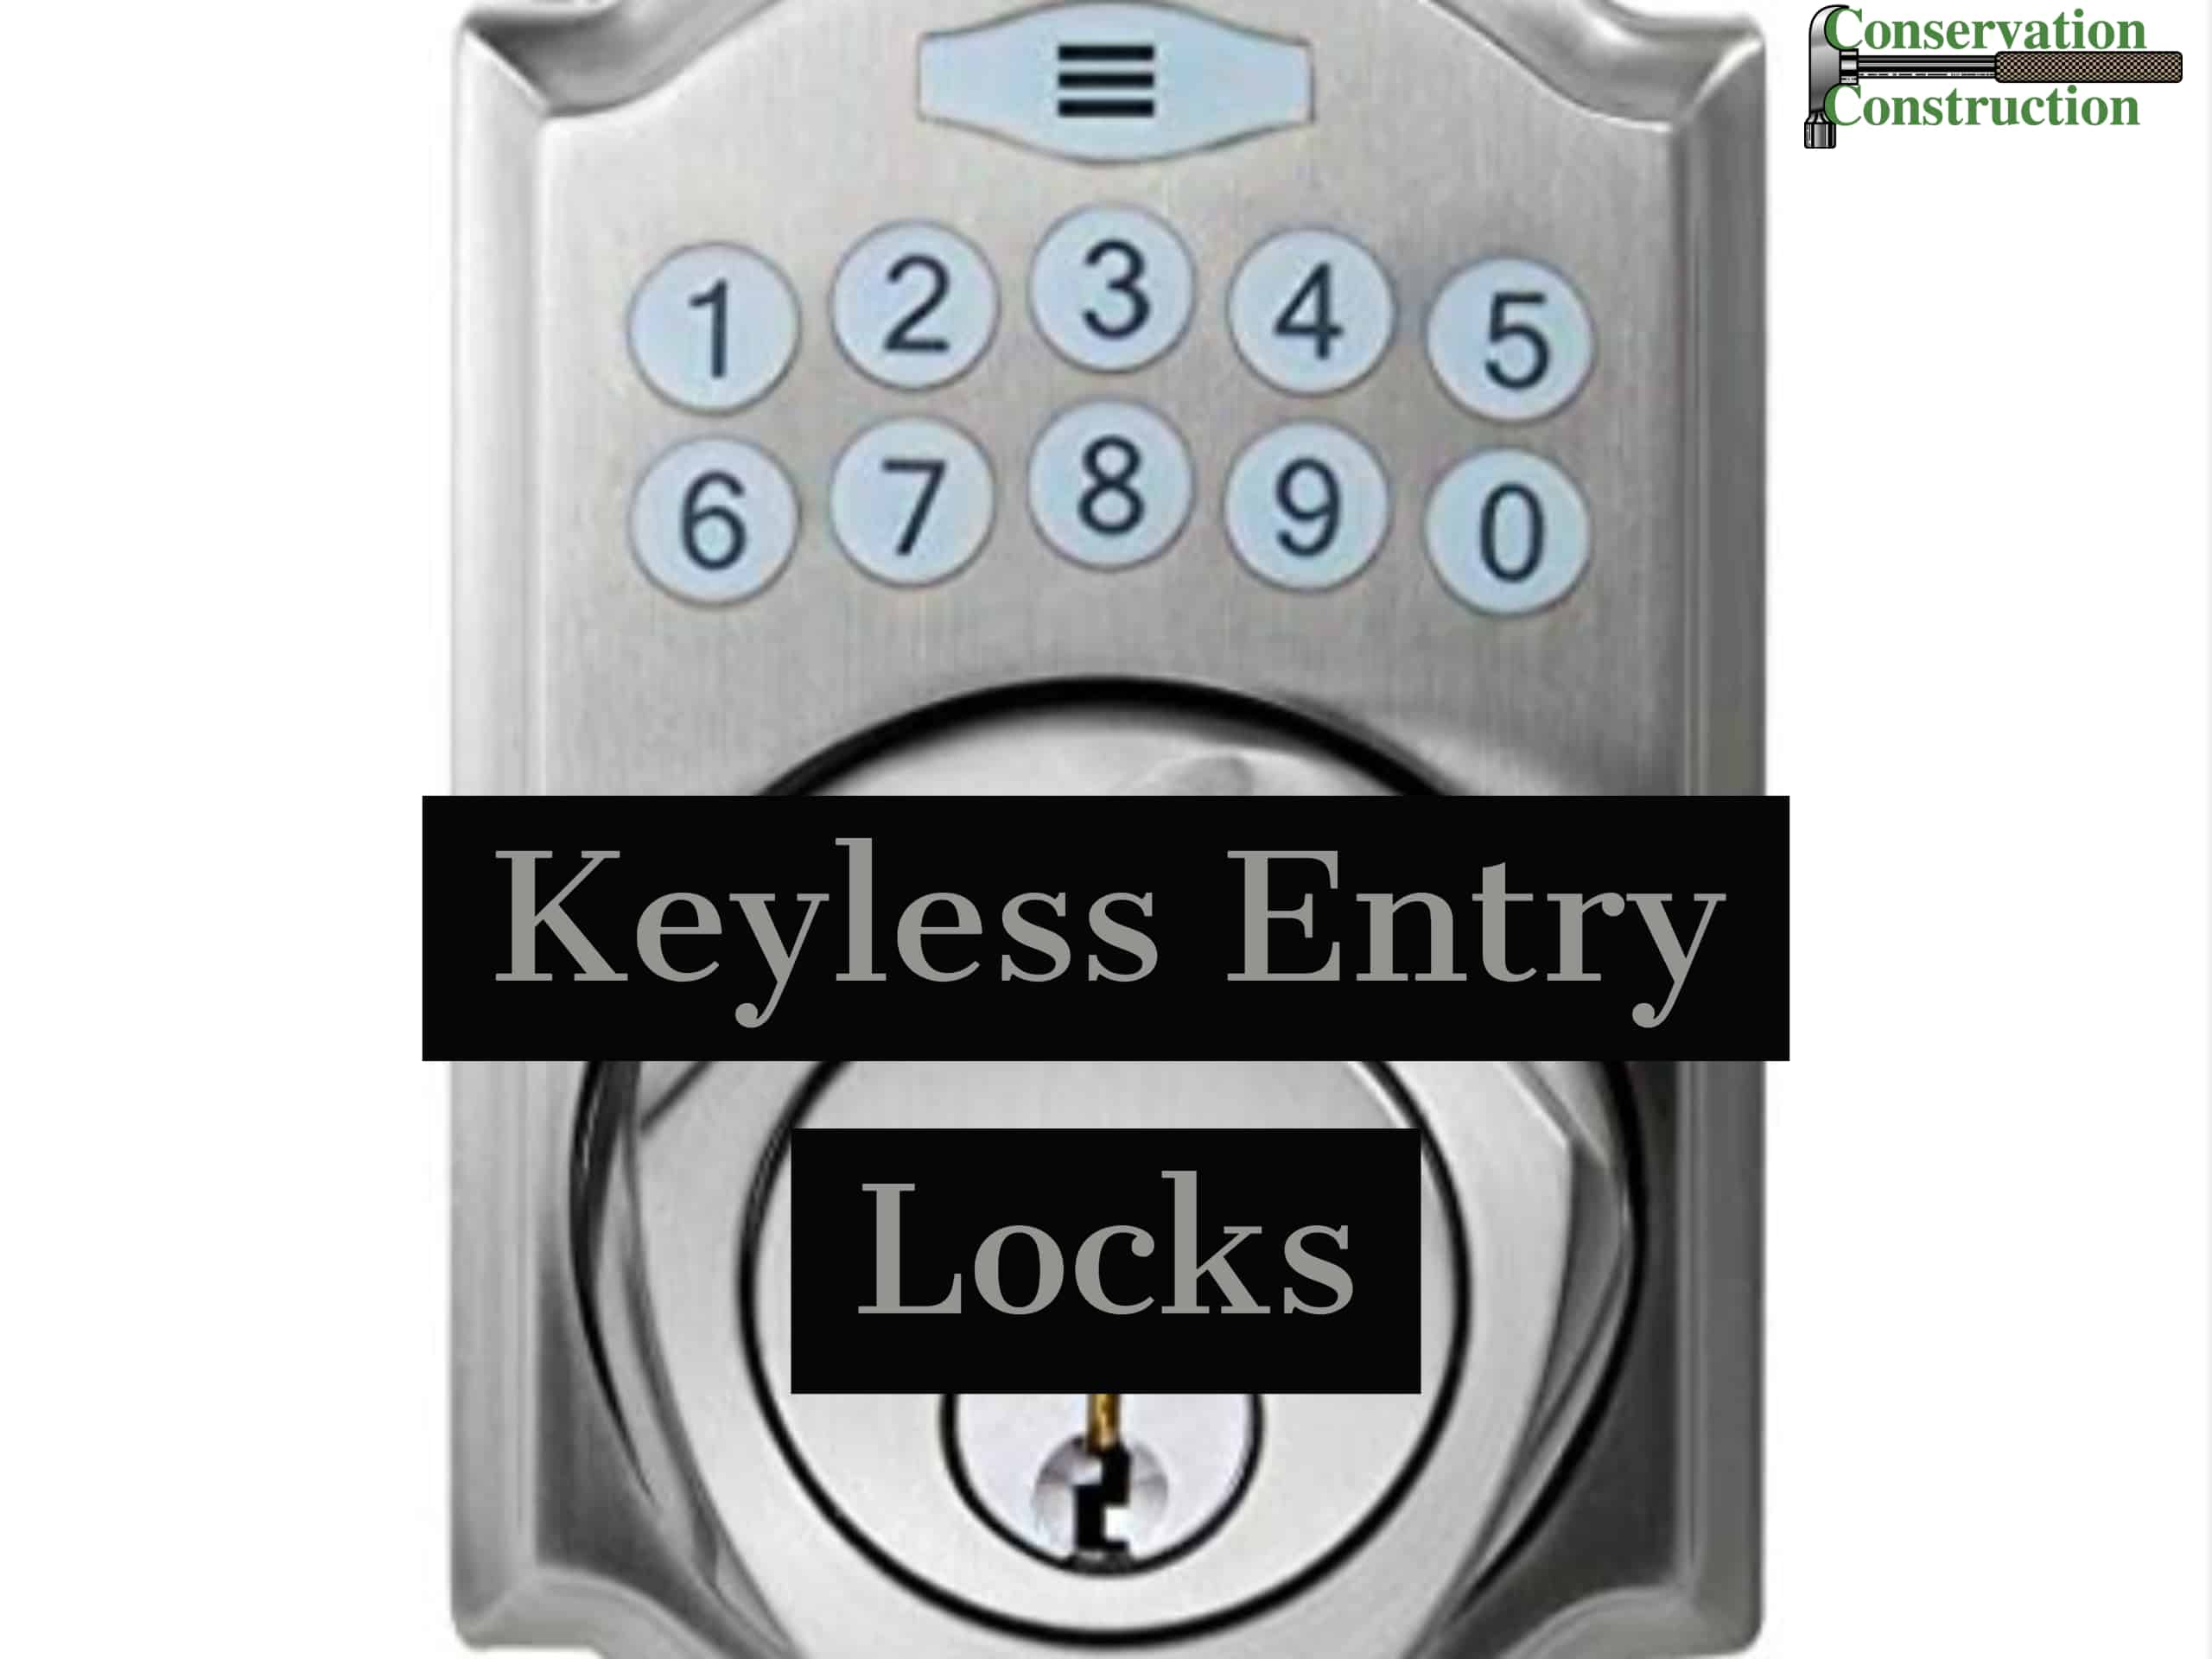 Conservation Construction Keyless Entry Locks